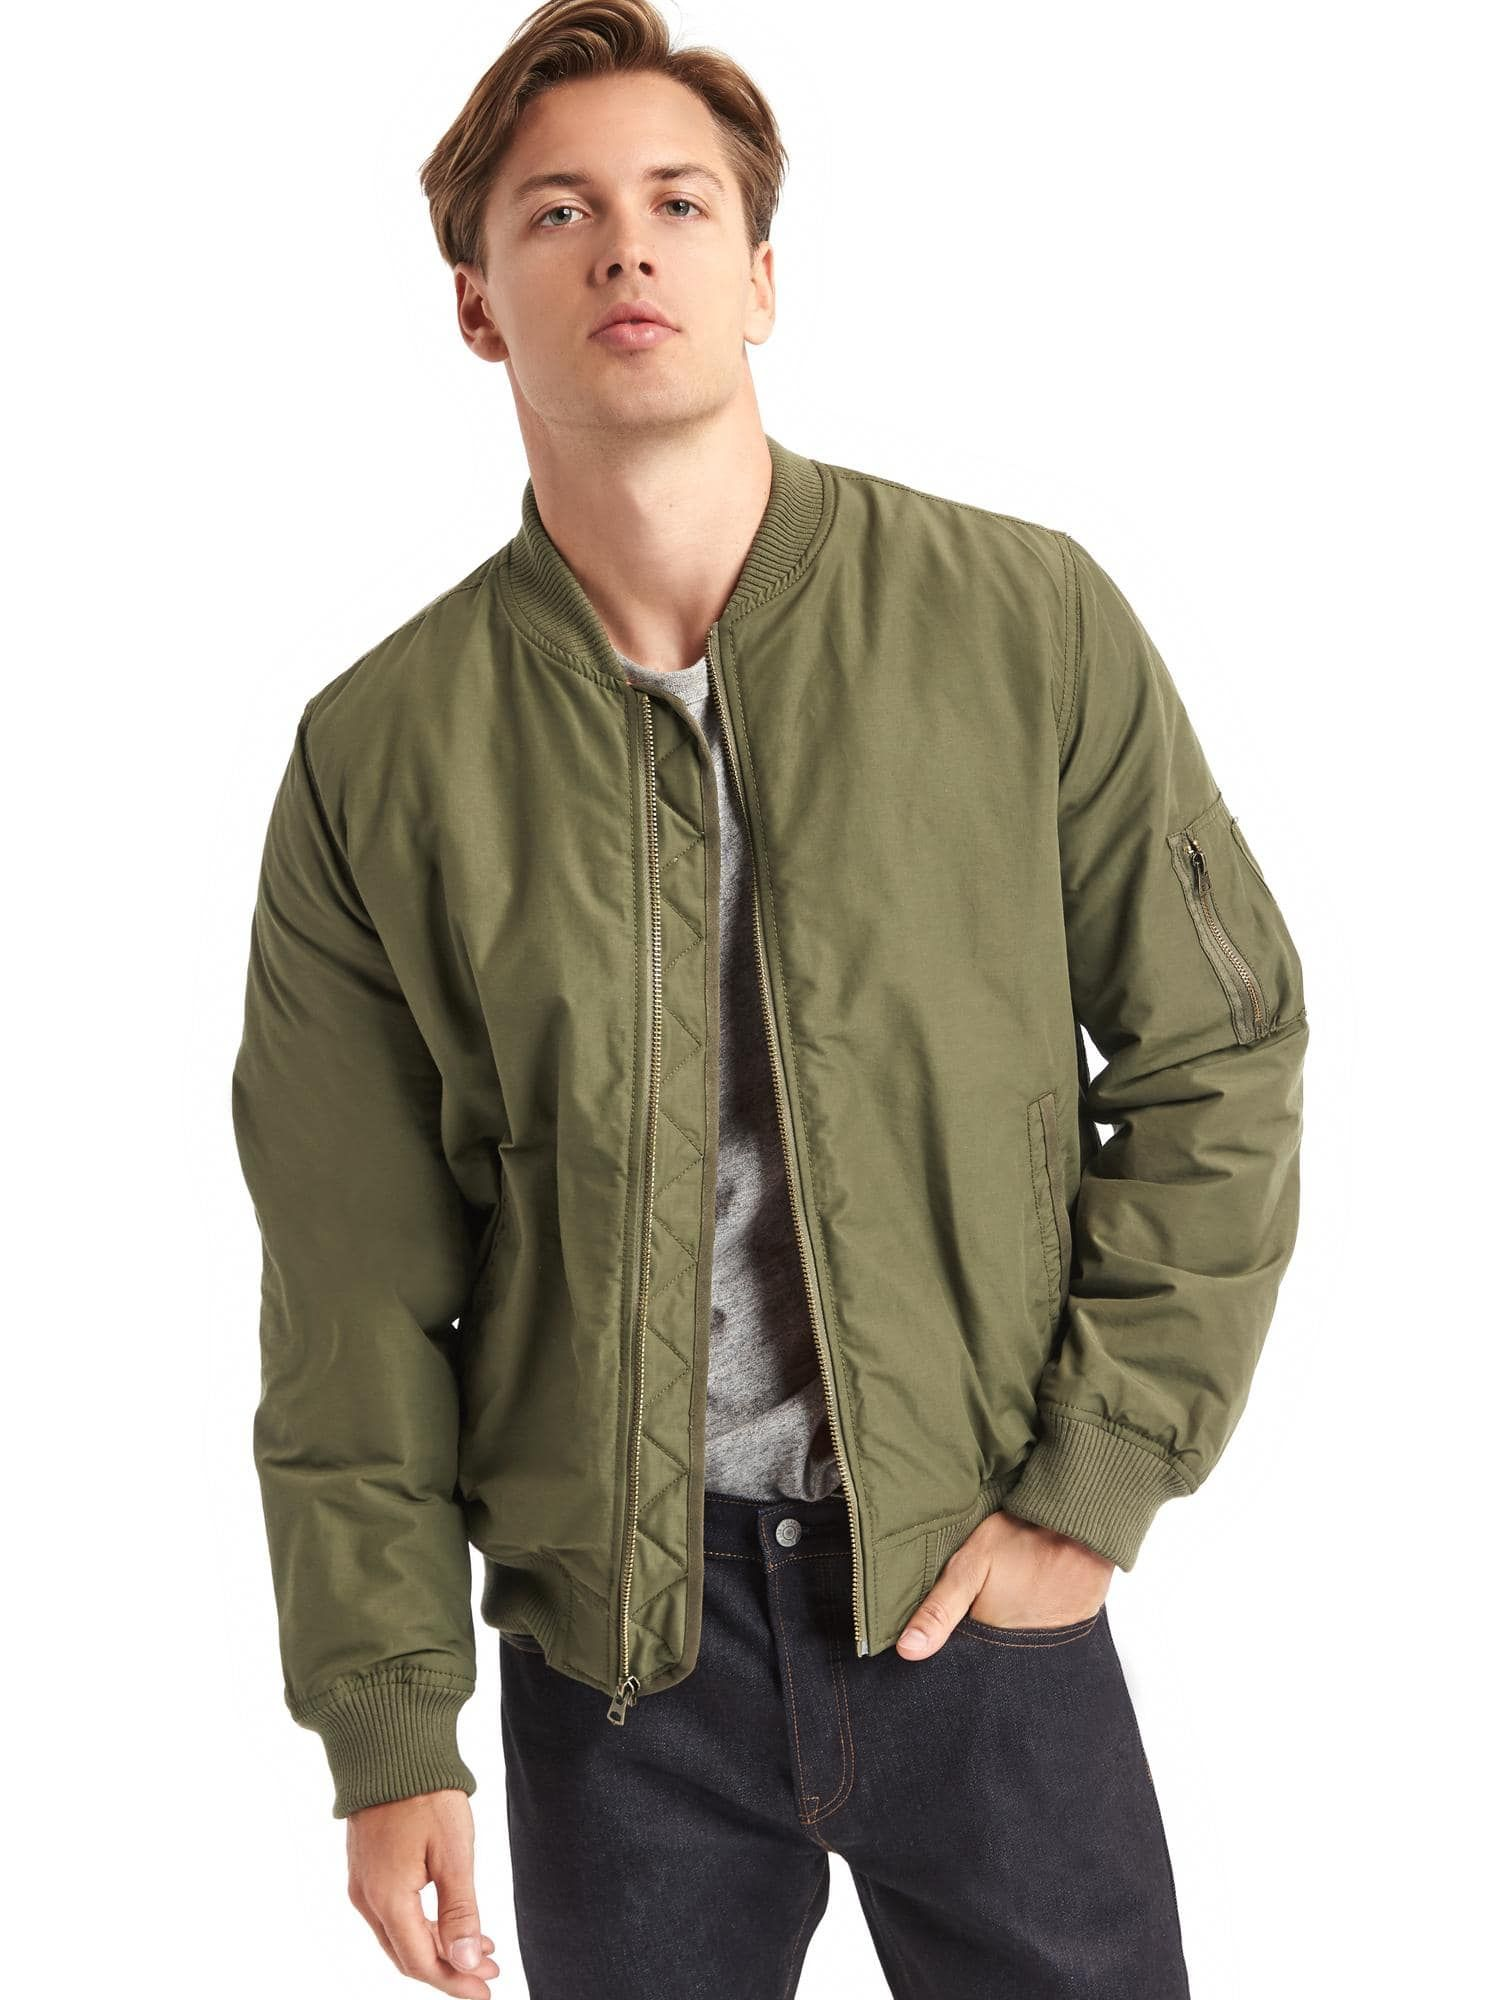 Vintage Bomber Jacket By Gap Daniel Likes Products